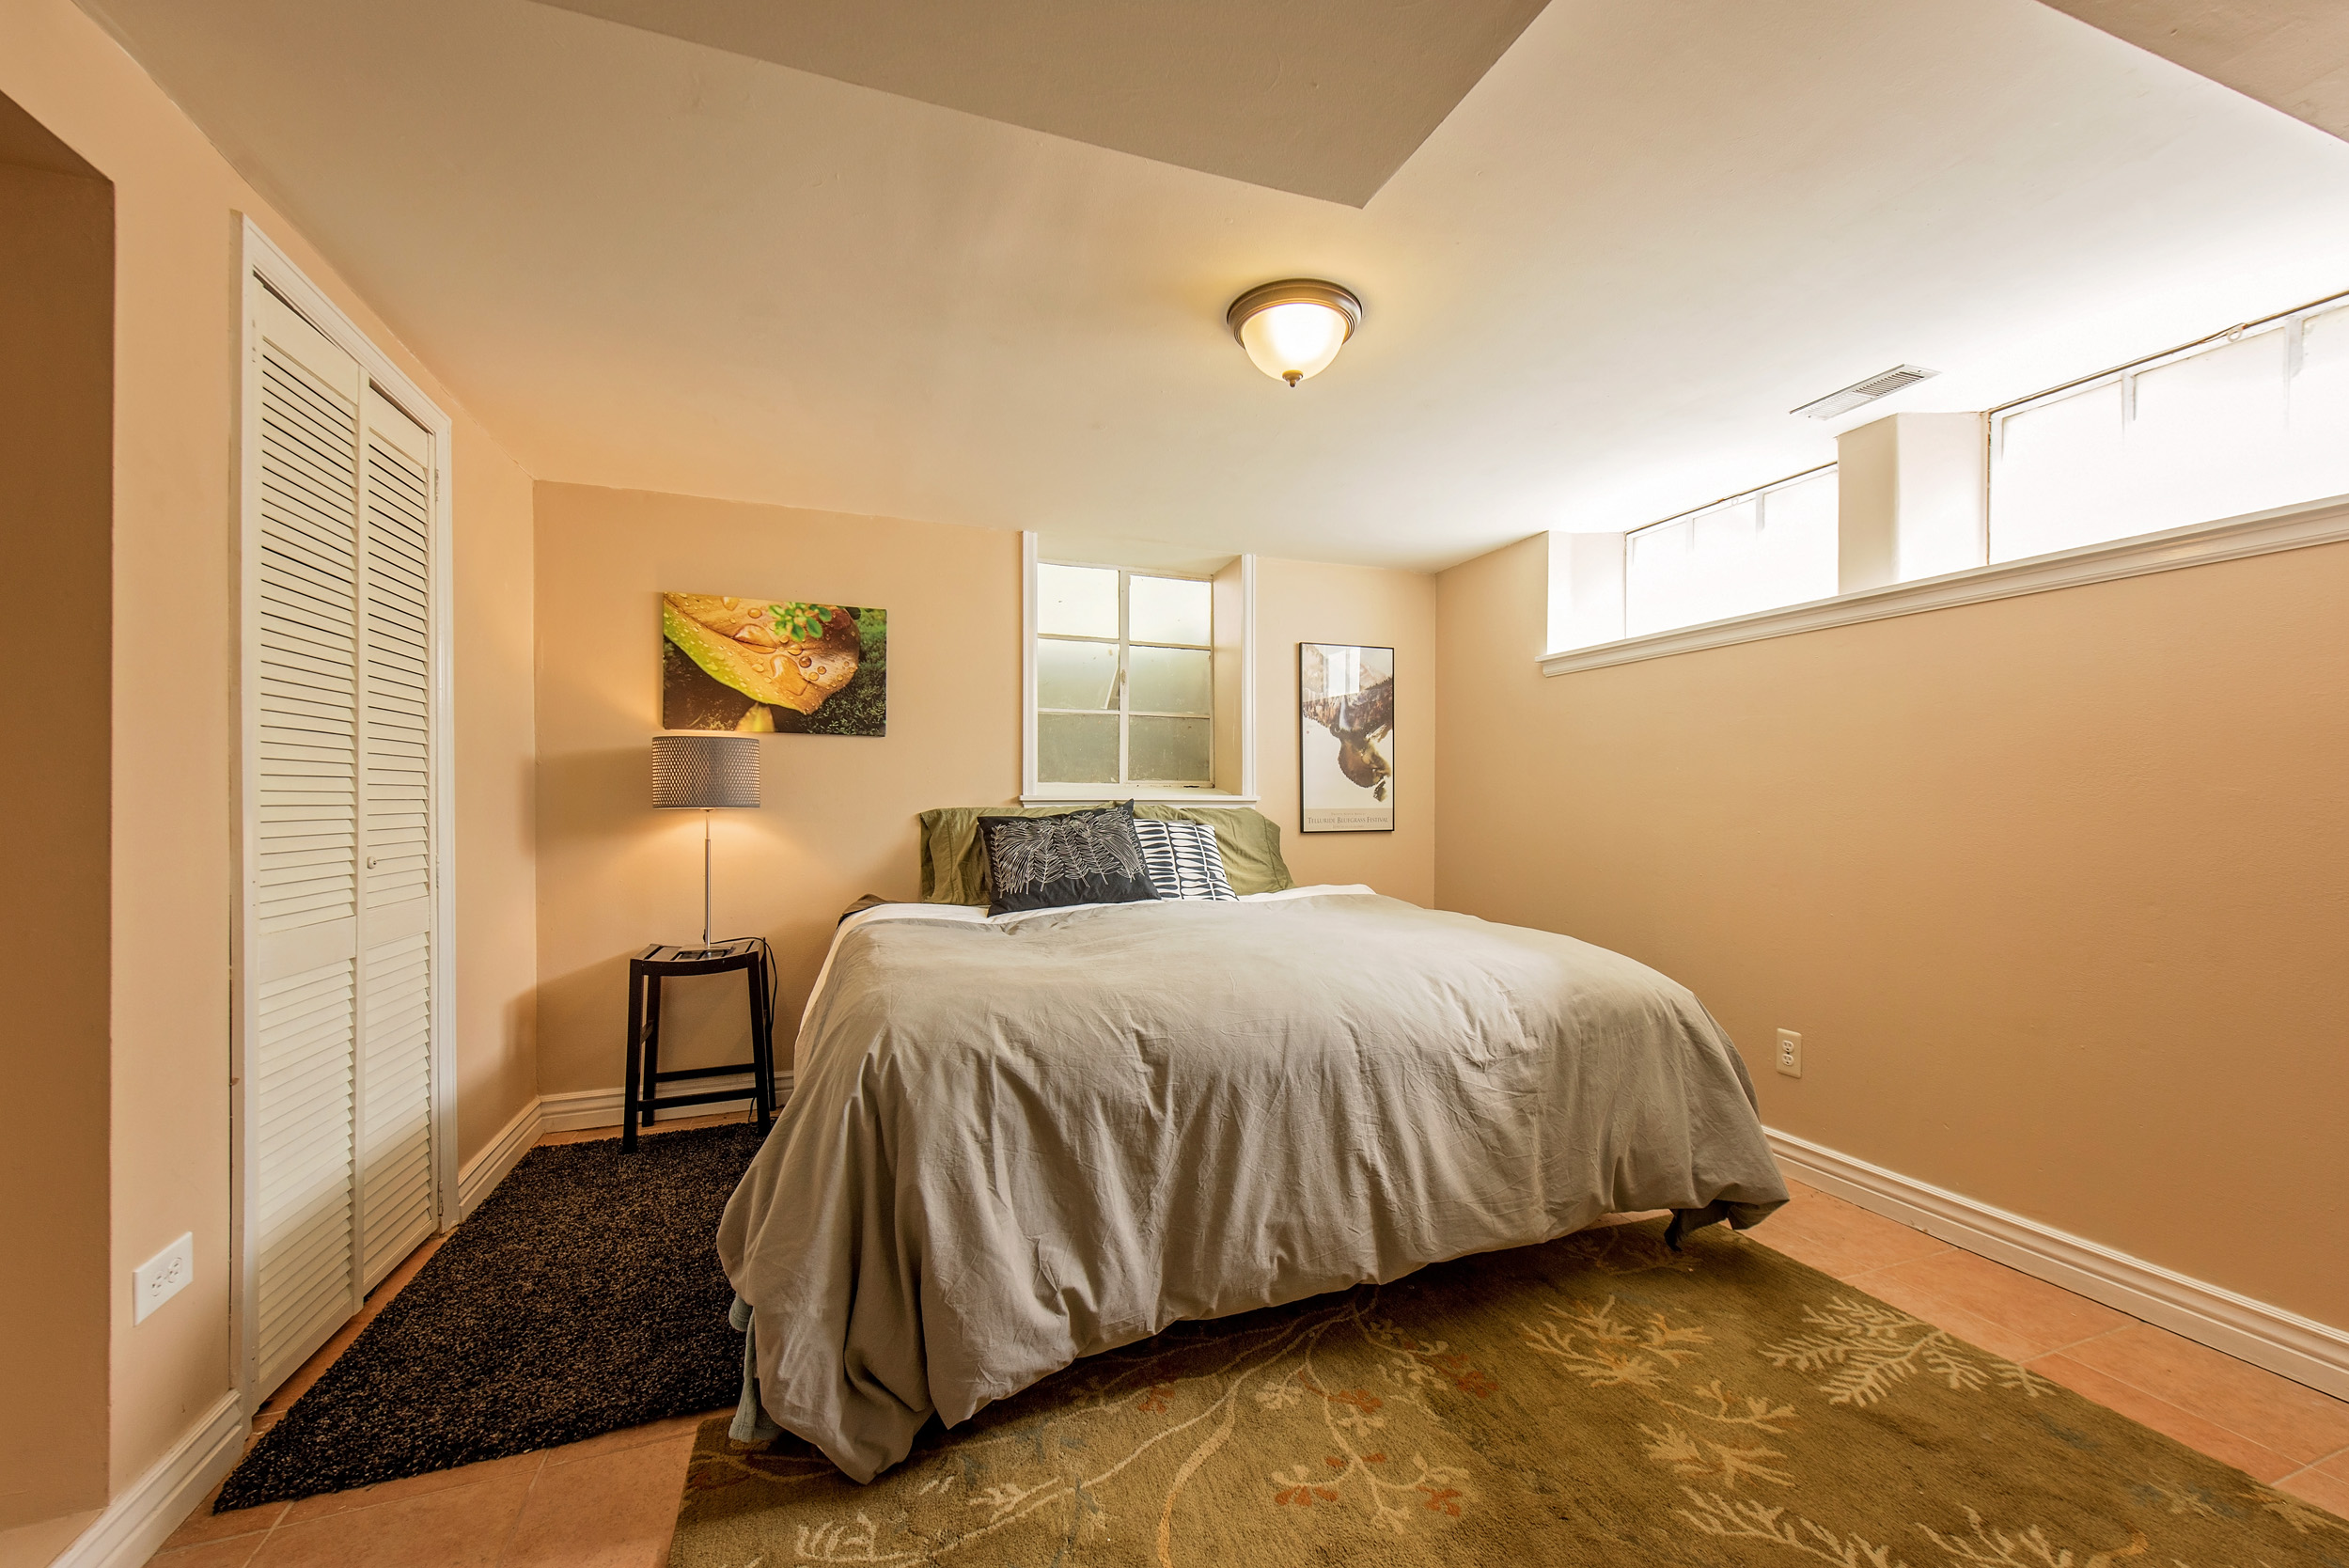 Britt_Nemeth_Photography_Real_Estate_Commercial_Architectural070.jpg